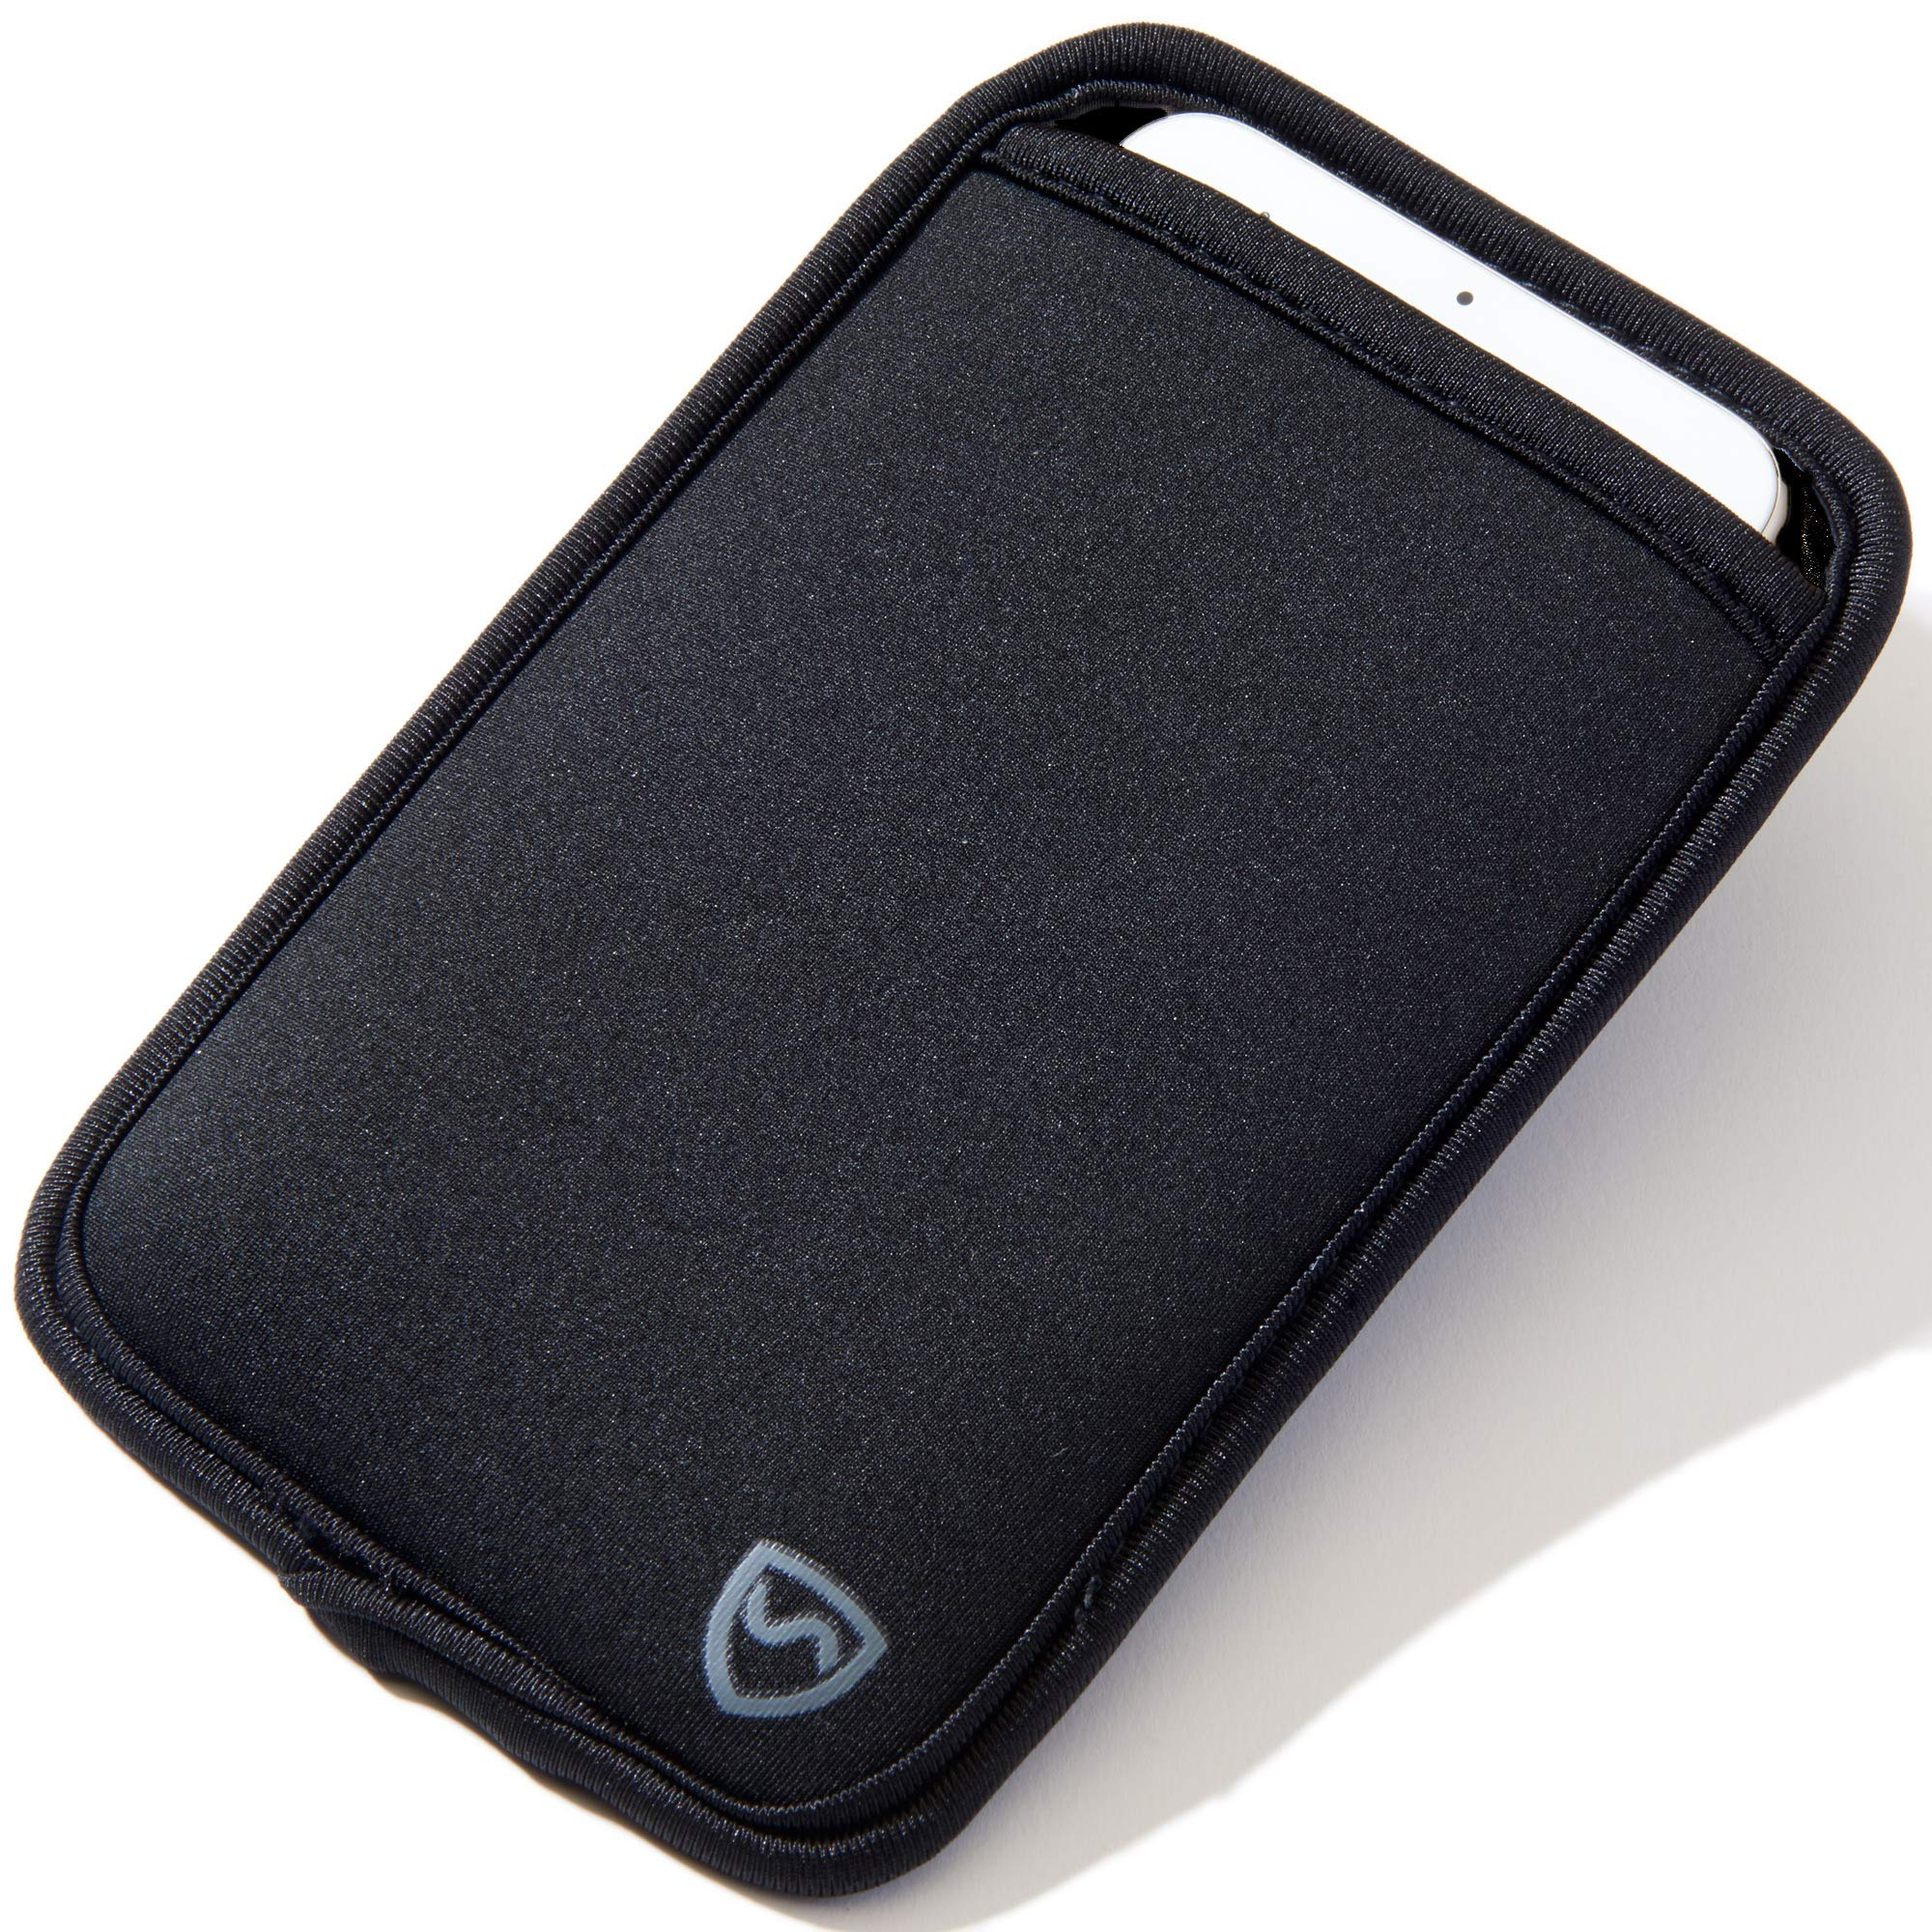 SYB Phone Pouch, Neoprene EMF Protection Sleeve for Cell Phones up to 3.25'' Wide, Black by SYB